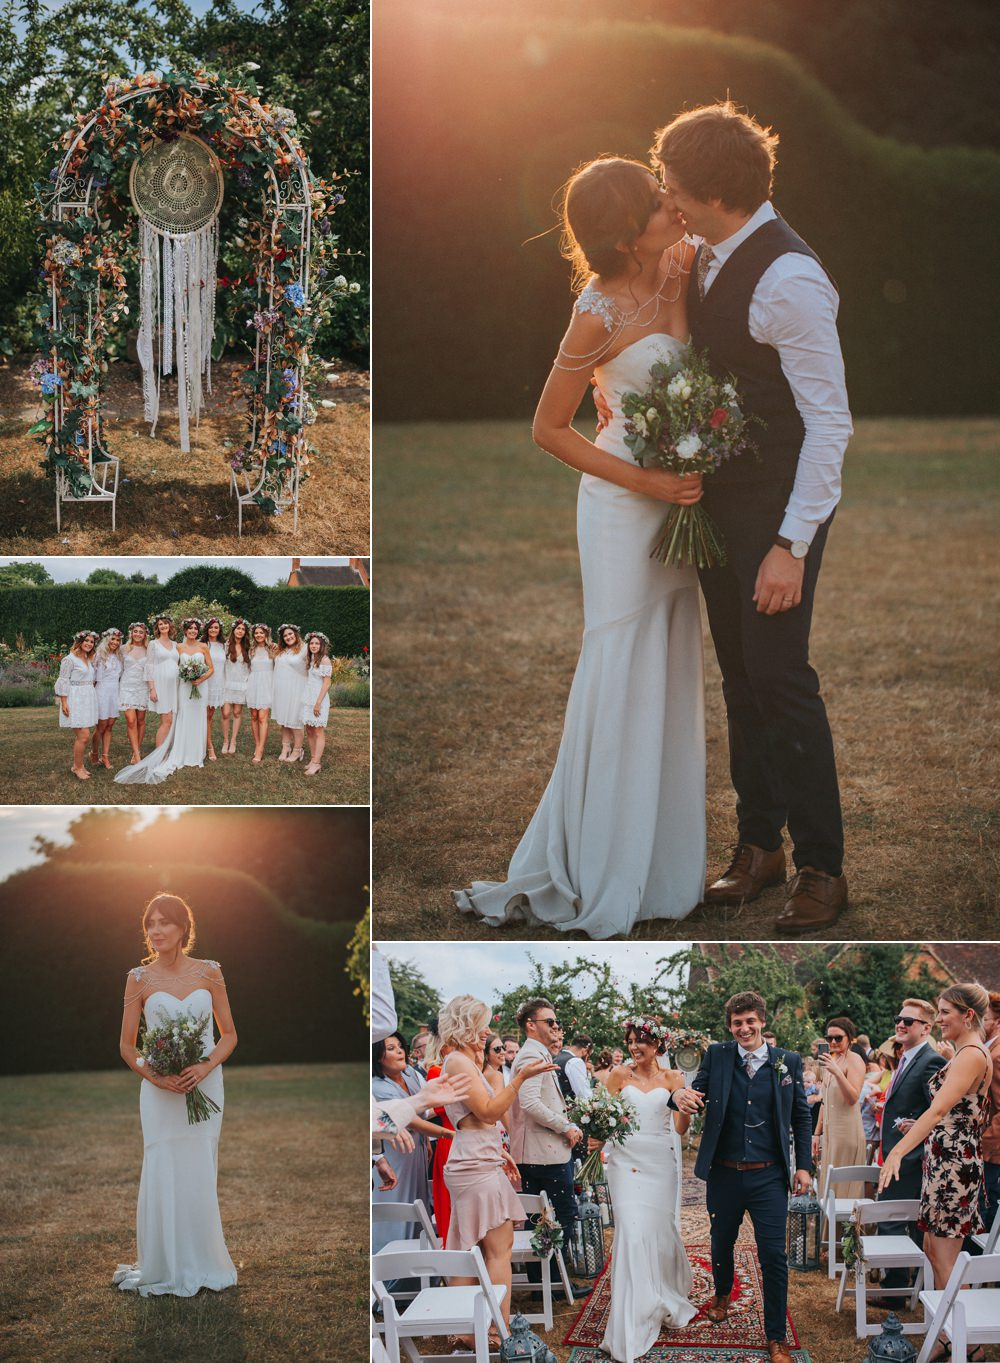 Summer Boho Outdoor Wedding with A Persian Rug Aisle & Dreamcatchers A Little Picture